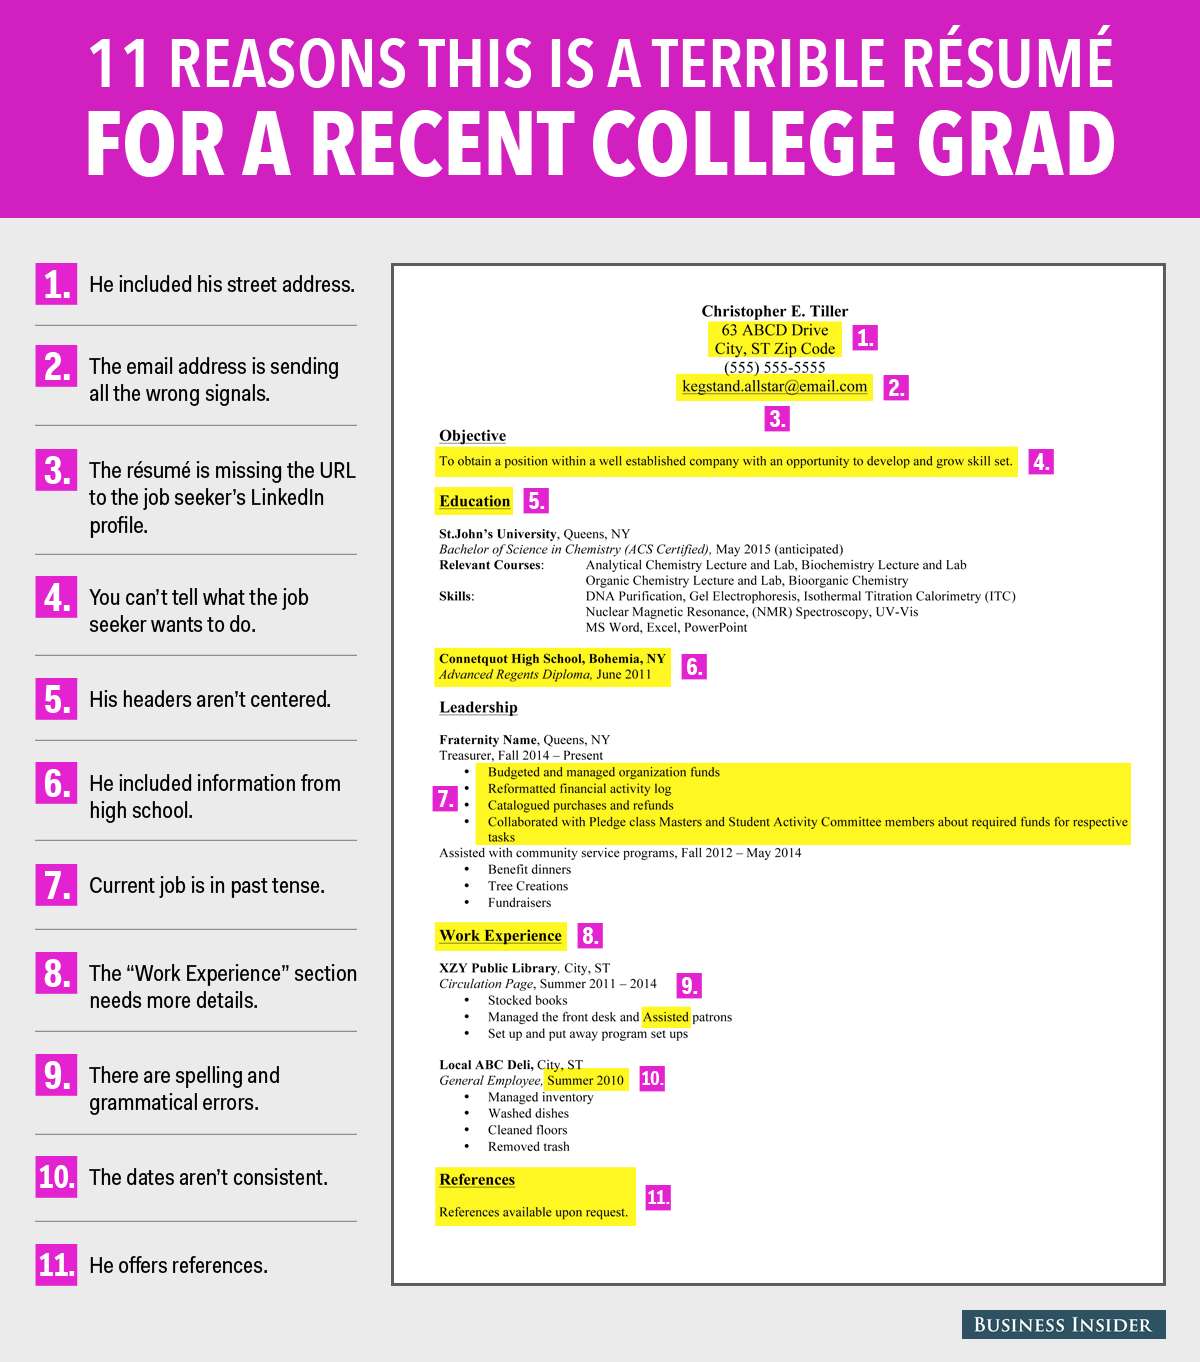 Recent College Graduate Resume 11 Reasons This Is A Terrible Résumé For A Recent College Grad